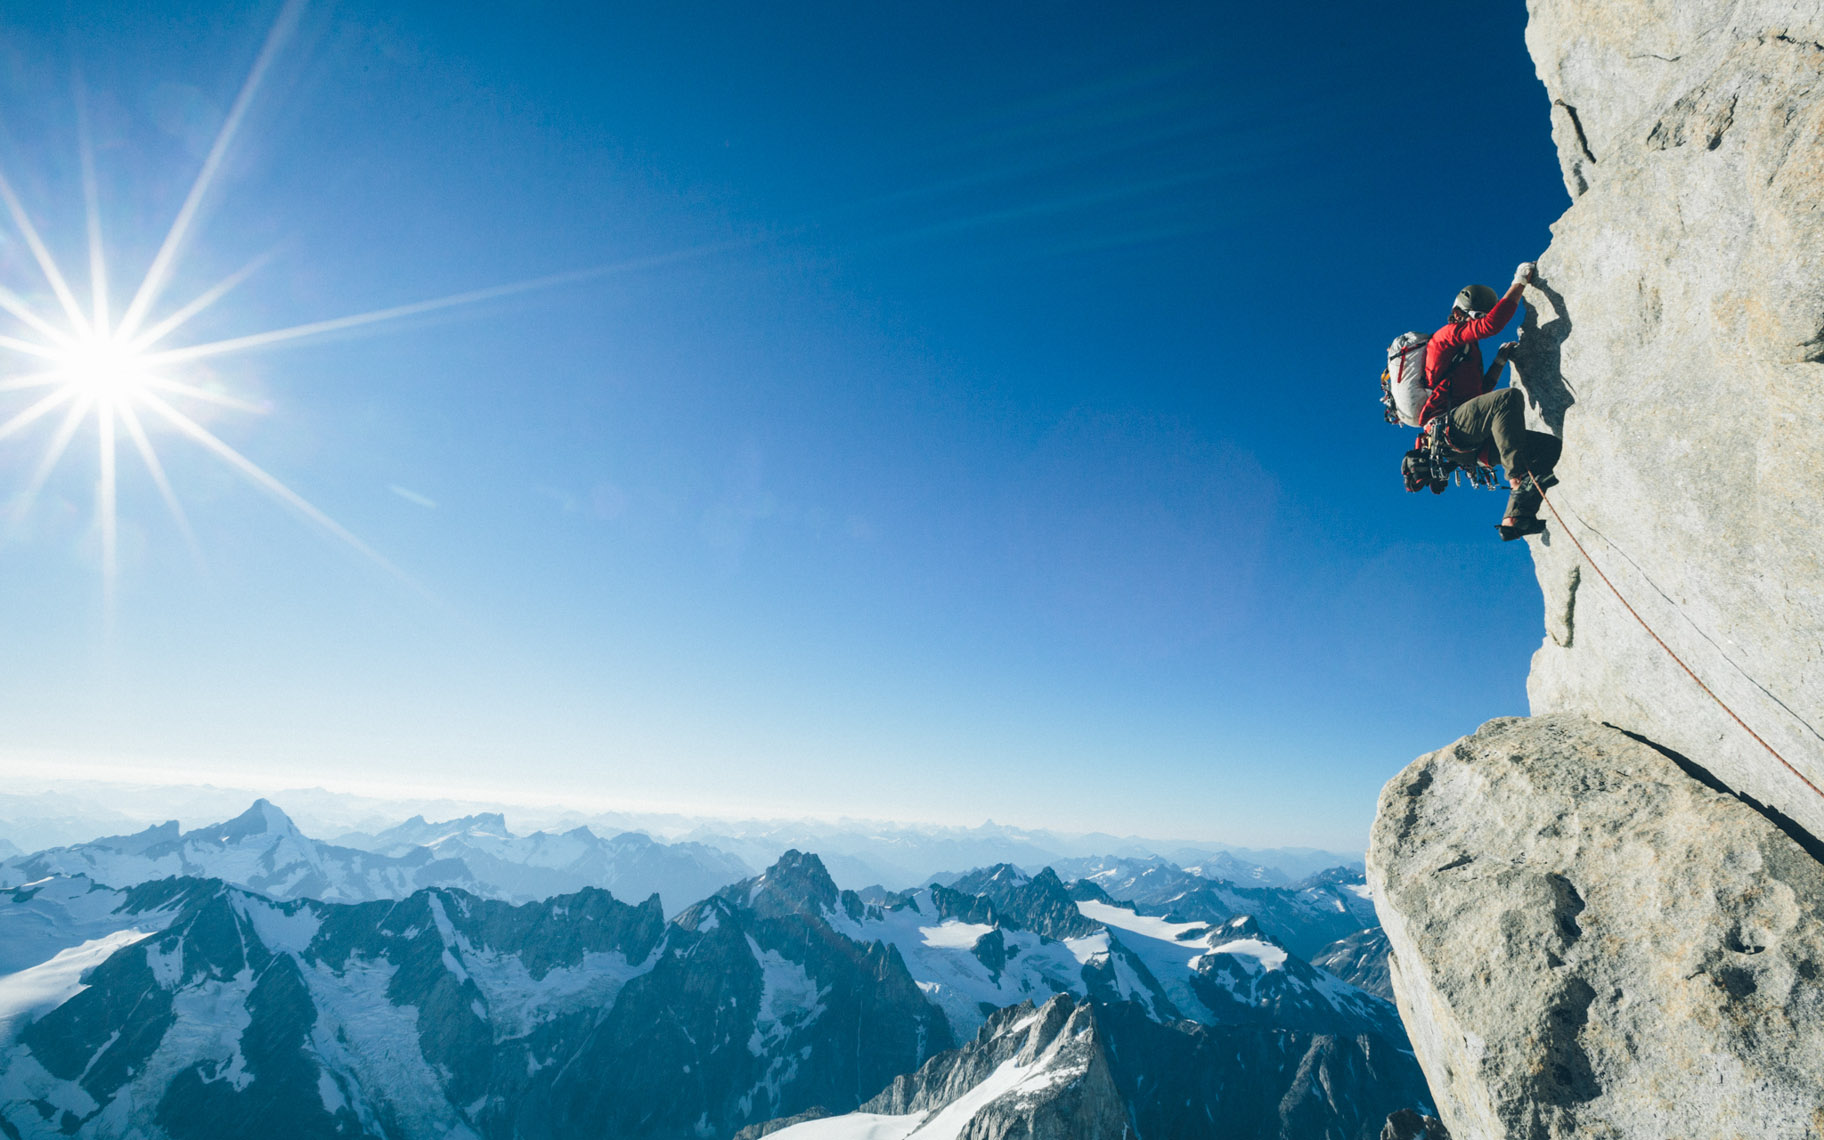 Rock climbing and climber photgraphs by Forest Woodward in the Waddington Range of British Columbia Canada high alpine